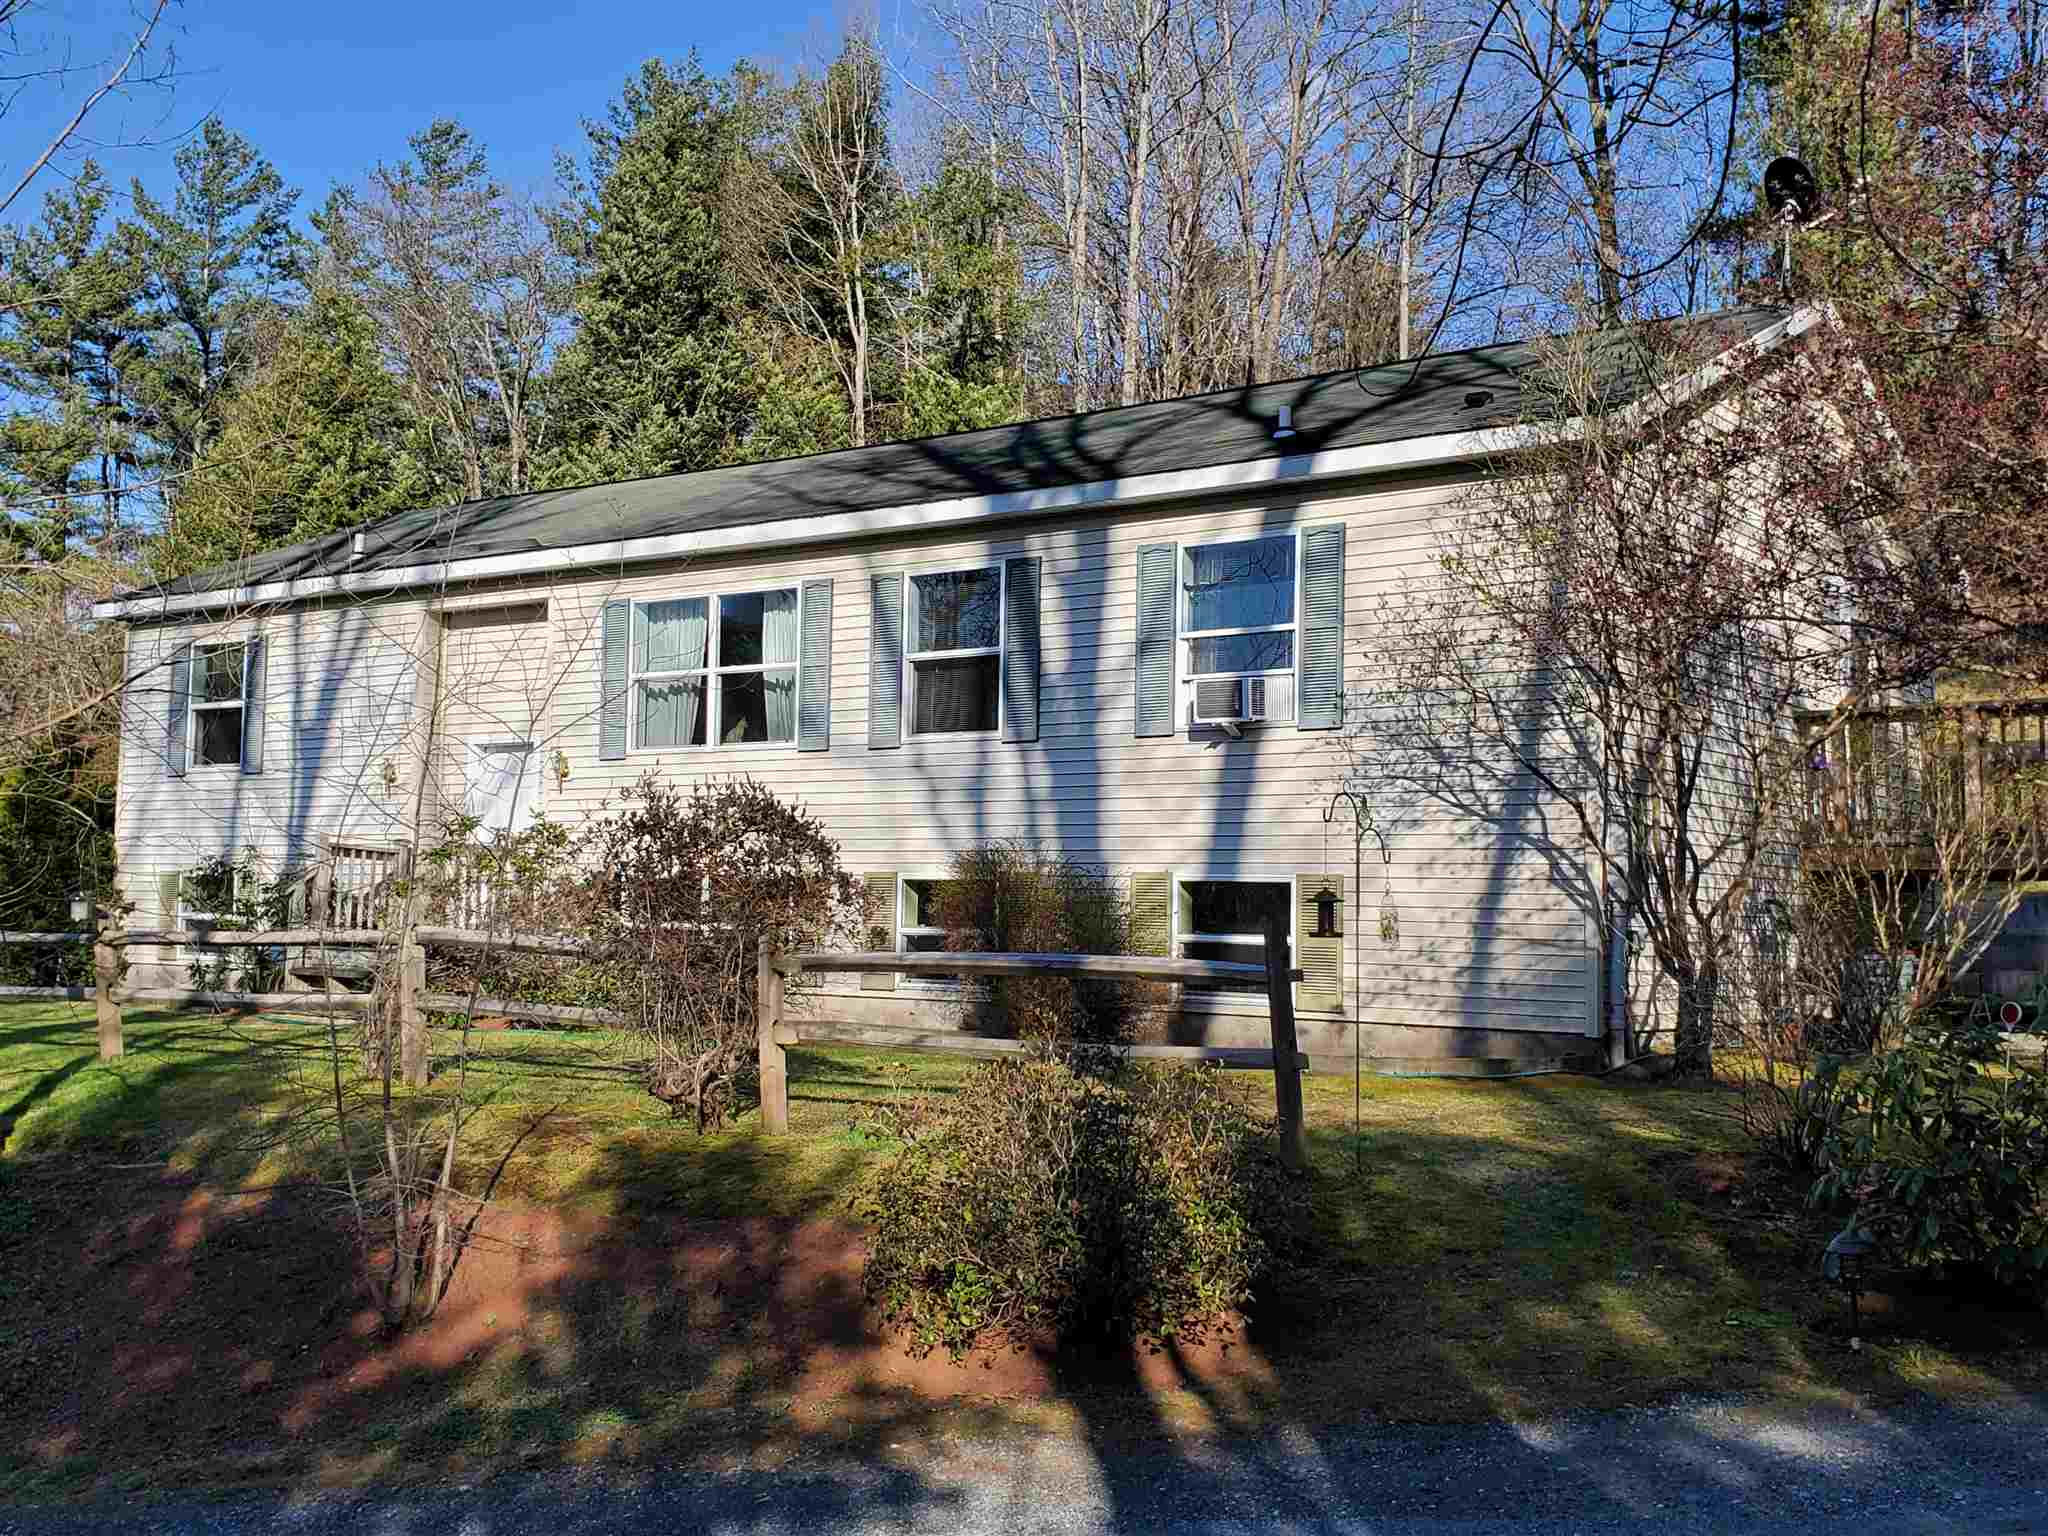 MLS 4805265: 98 True's Brook Road, Lebanon NH